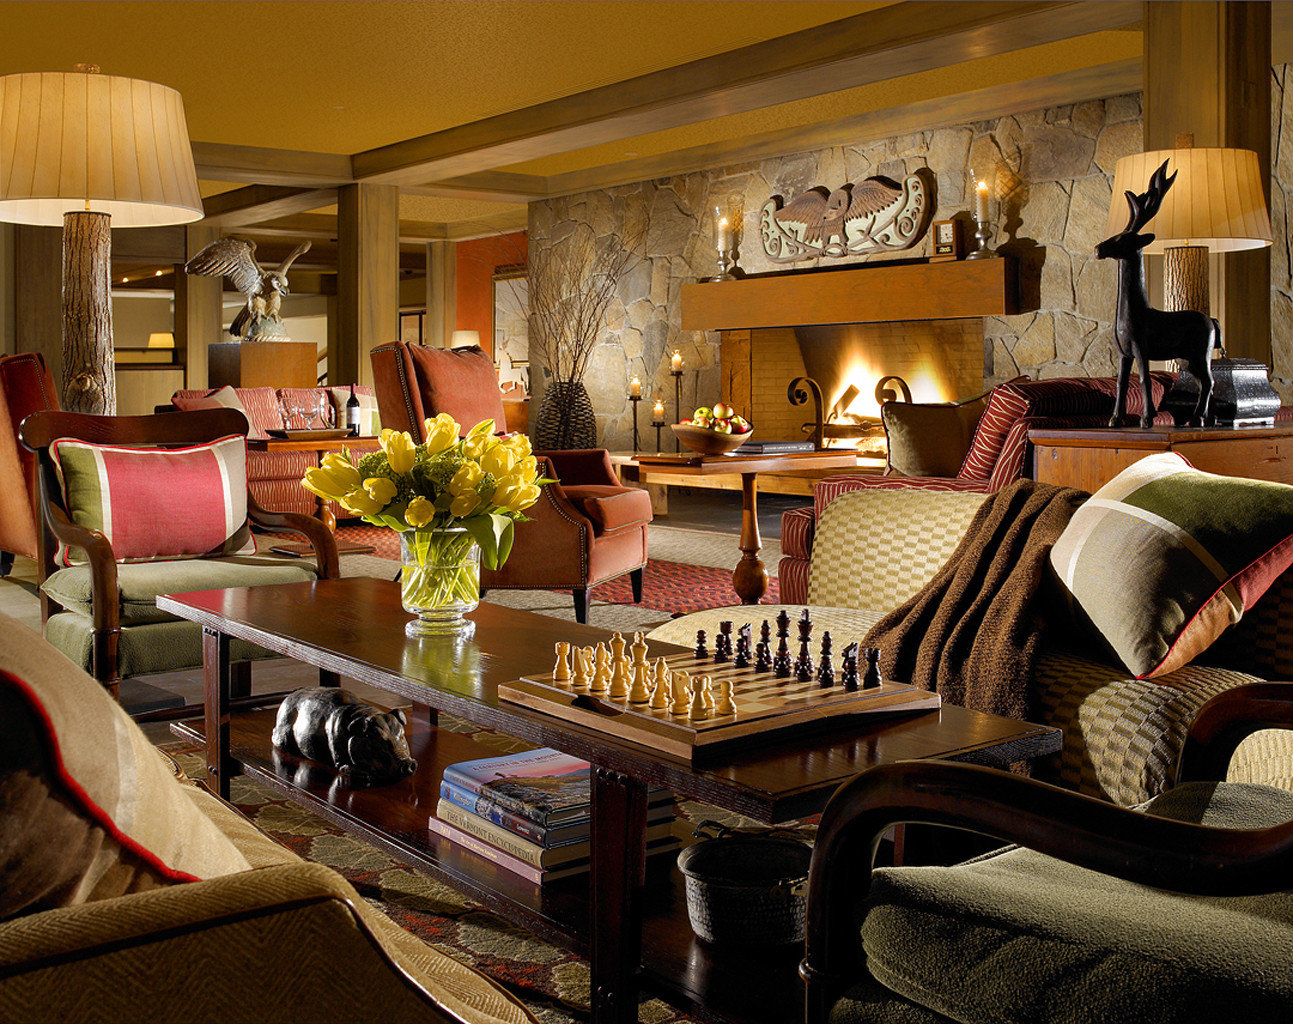 Country Fireplace Inn Lobby Lounge Resort Weekend Getaways indoor living room room Living property home estate interior design dining room furniture Suite recreation room decorated area several cluttered